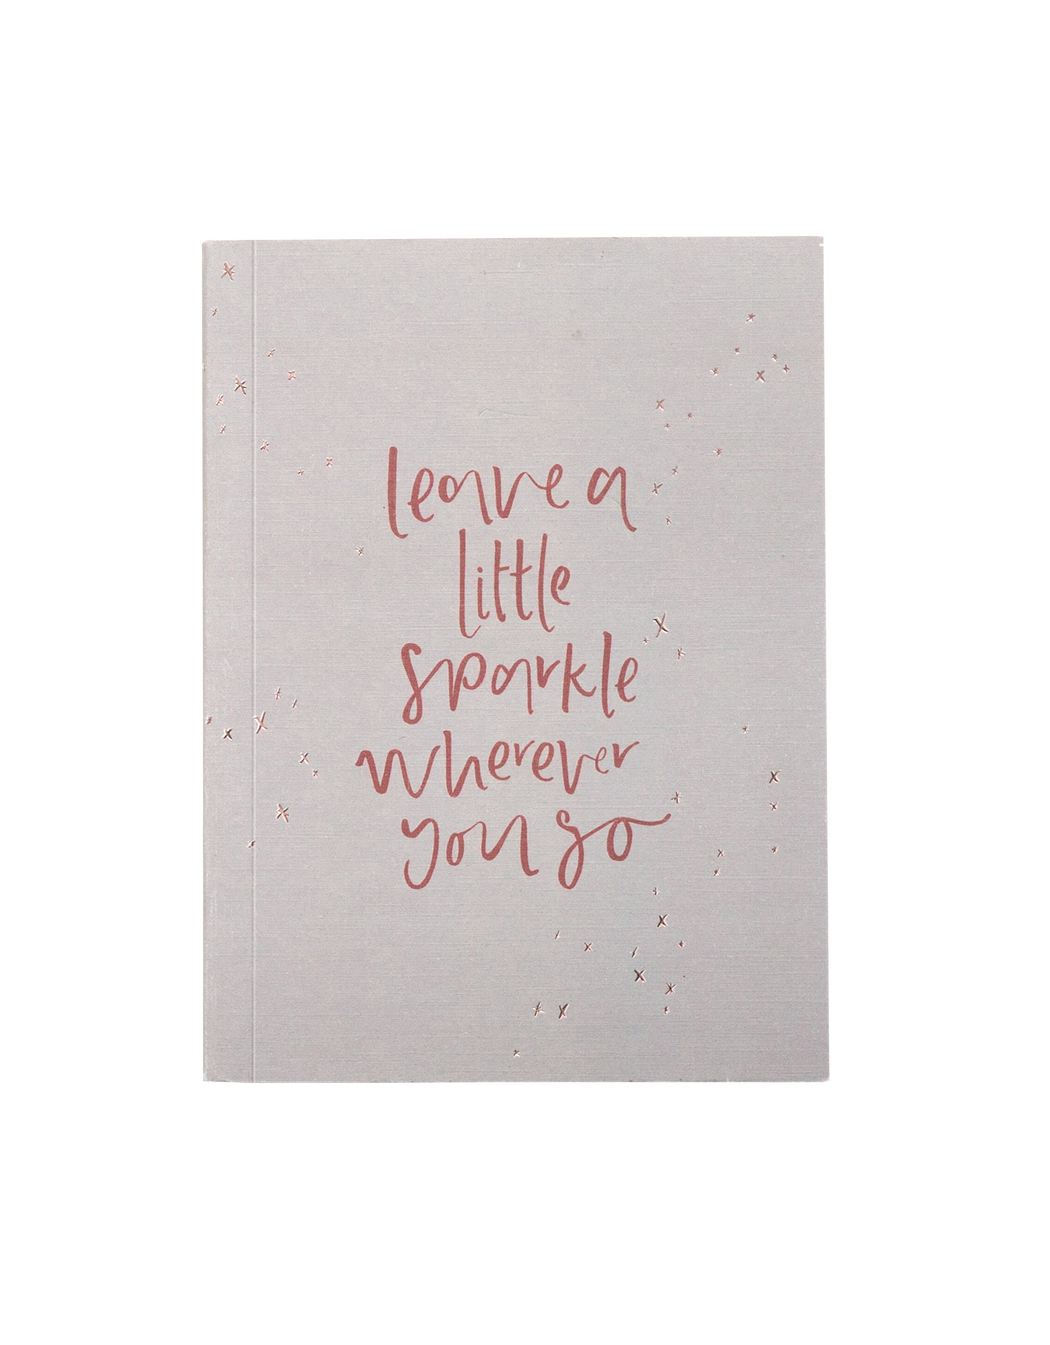 Leave Sparkle, Stationery, Emma Kate Co. - 3LittlePicks